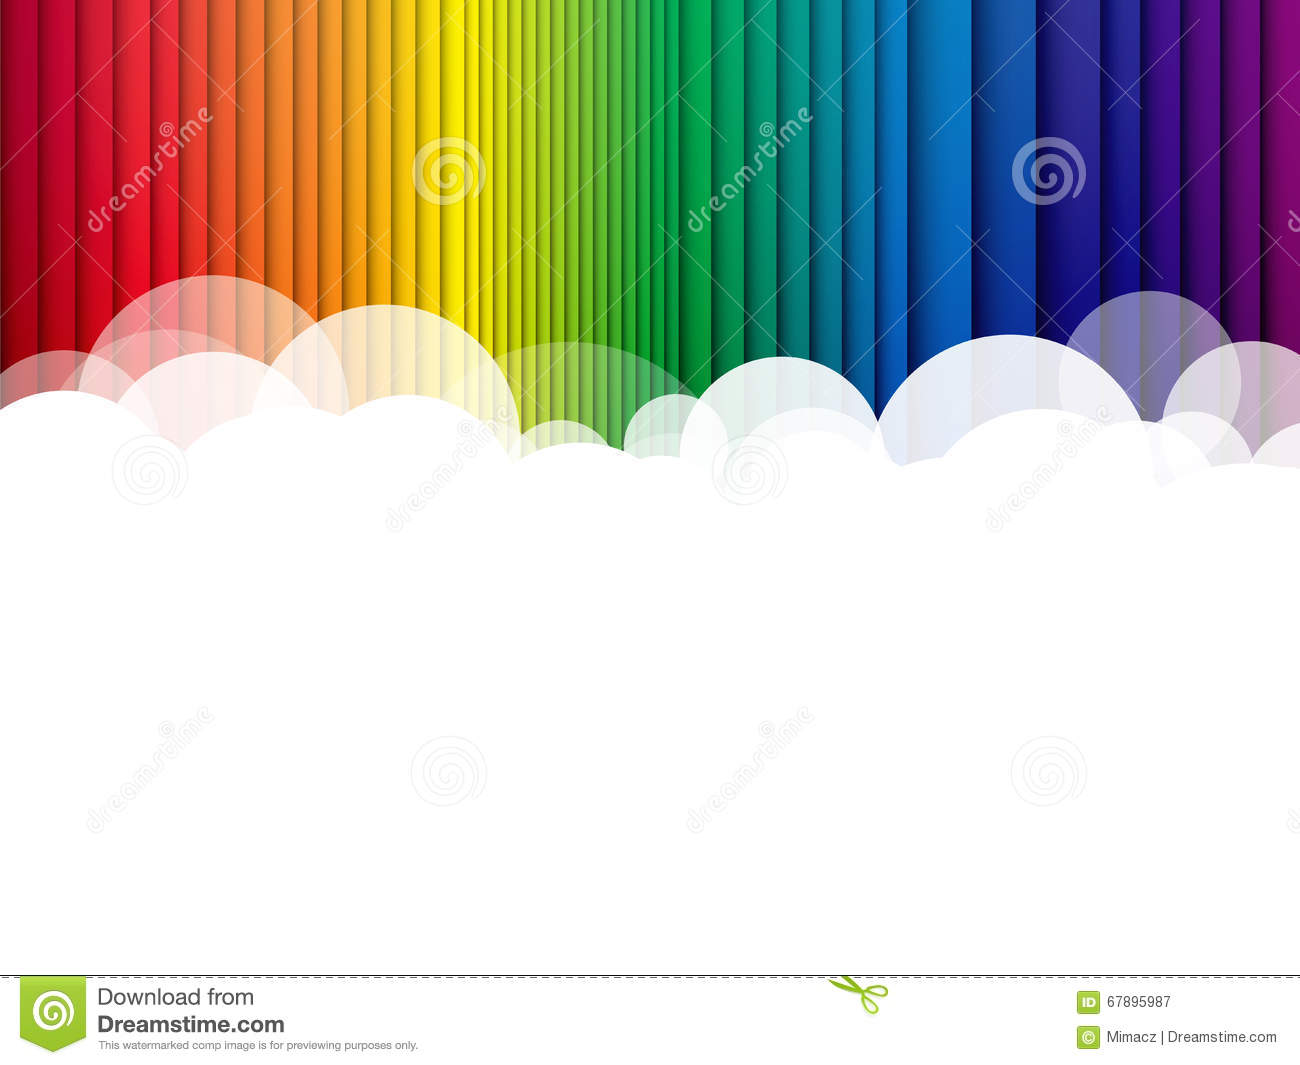 Clouds background rainbow stripes